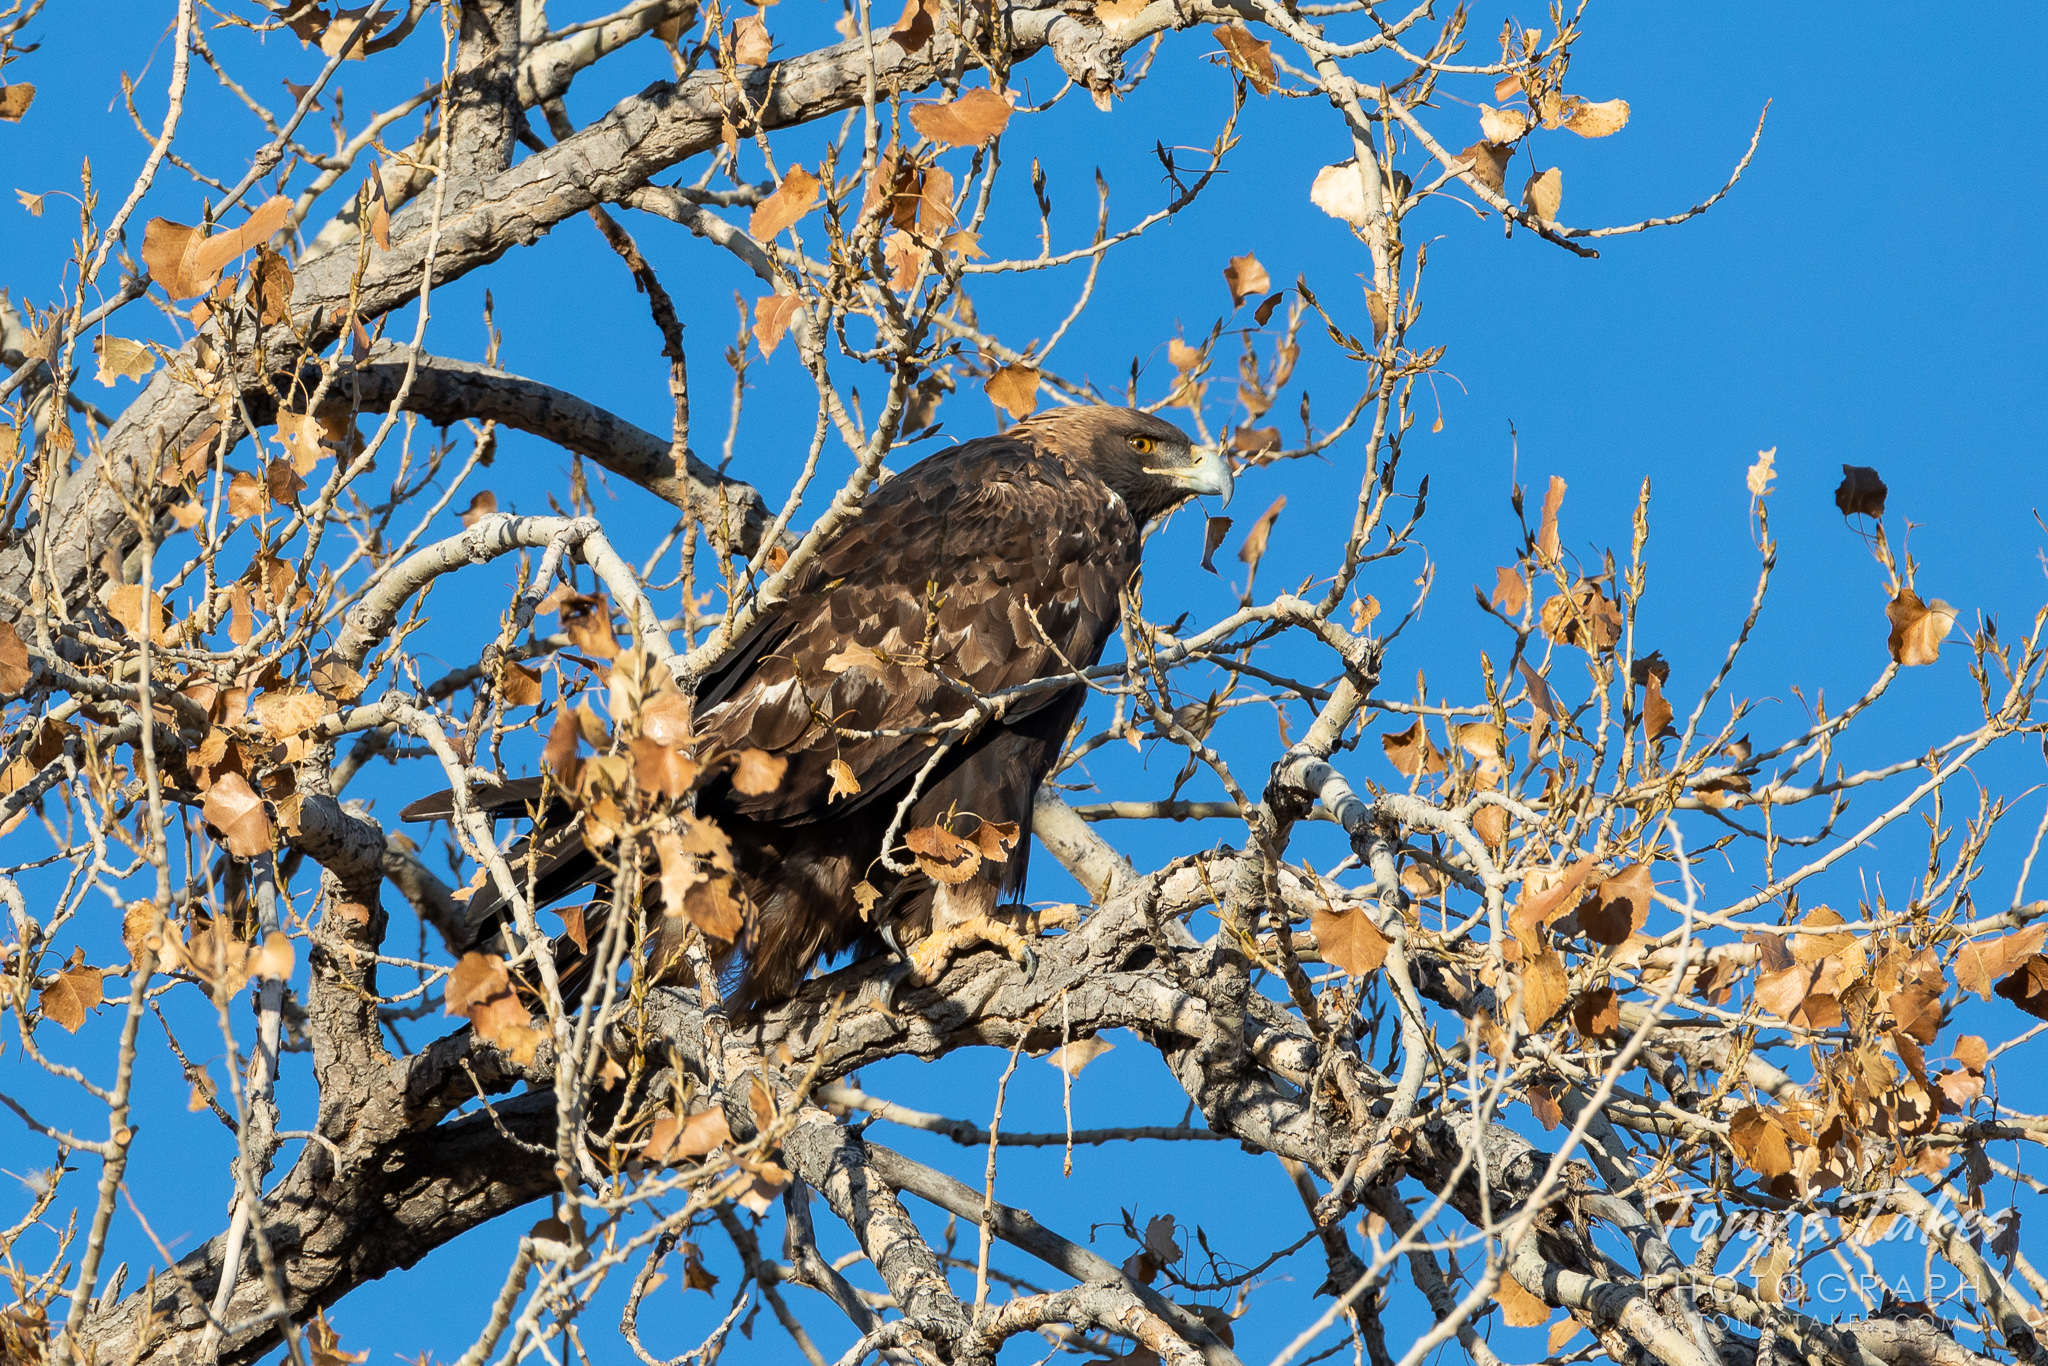 Gorgeous golden eagle returns to its winter roost